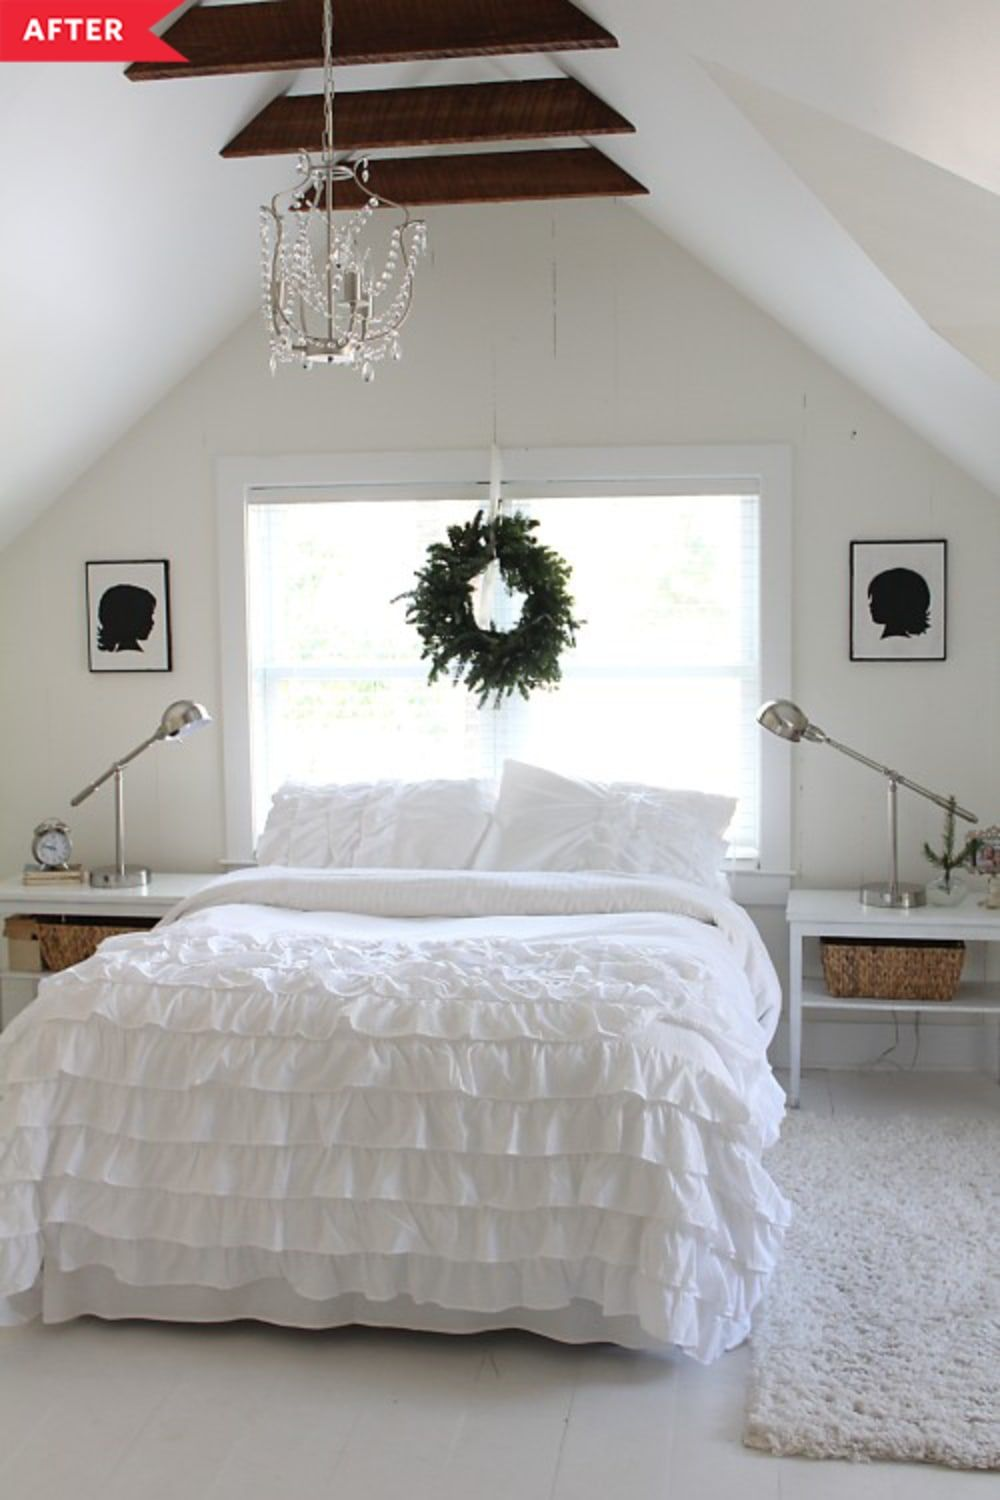 5 Dreamy Attic Remodels That Take Cozy Style All the Way to the Top